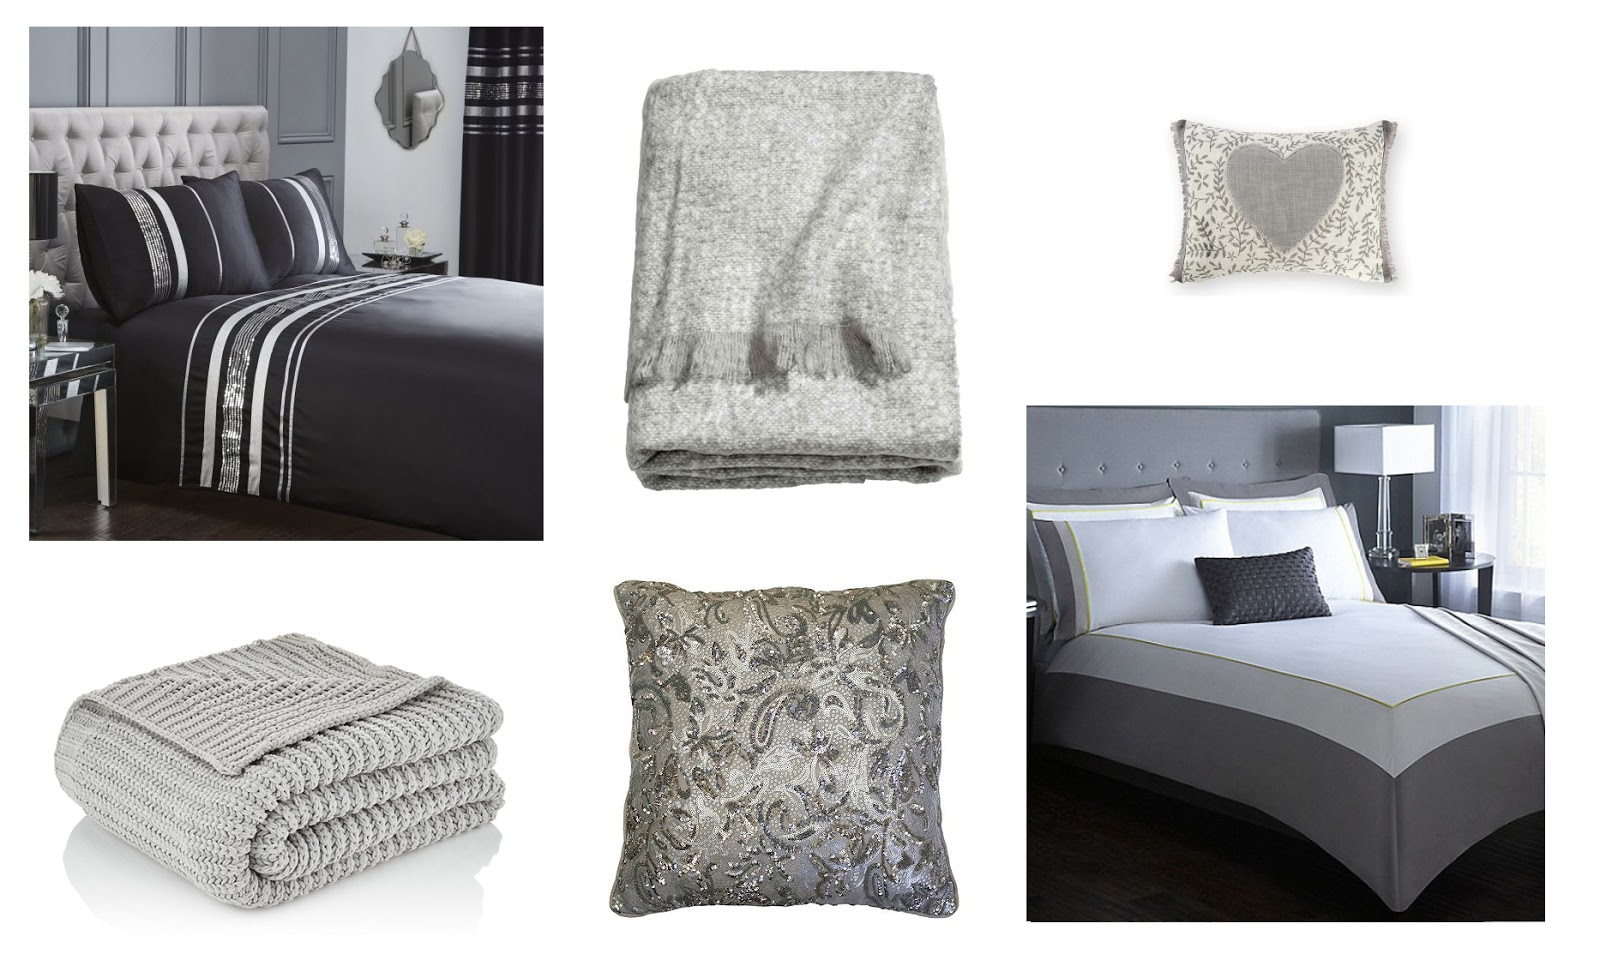 Bedding For Changing Your Bedroom Atomsphere: Monochrome Moodboard | Katie Kirk Loves